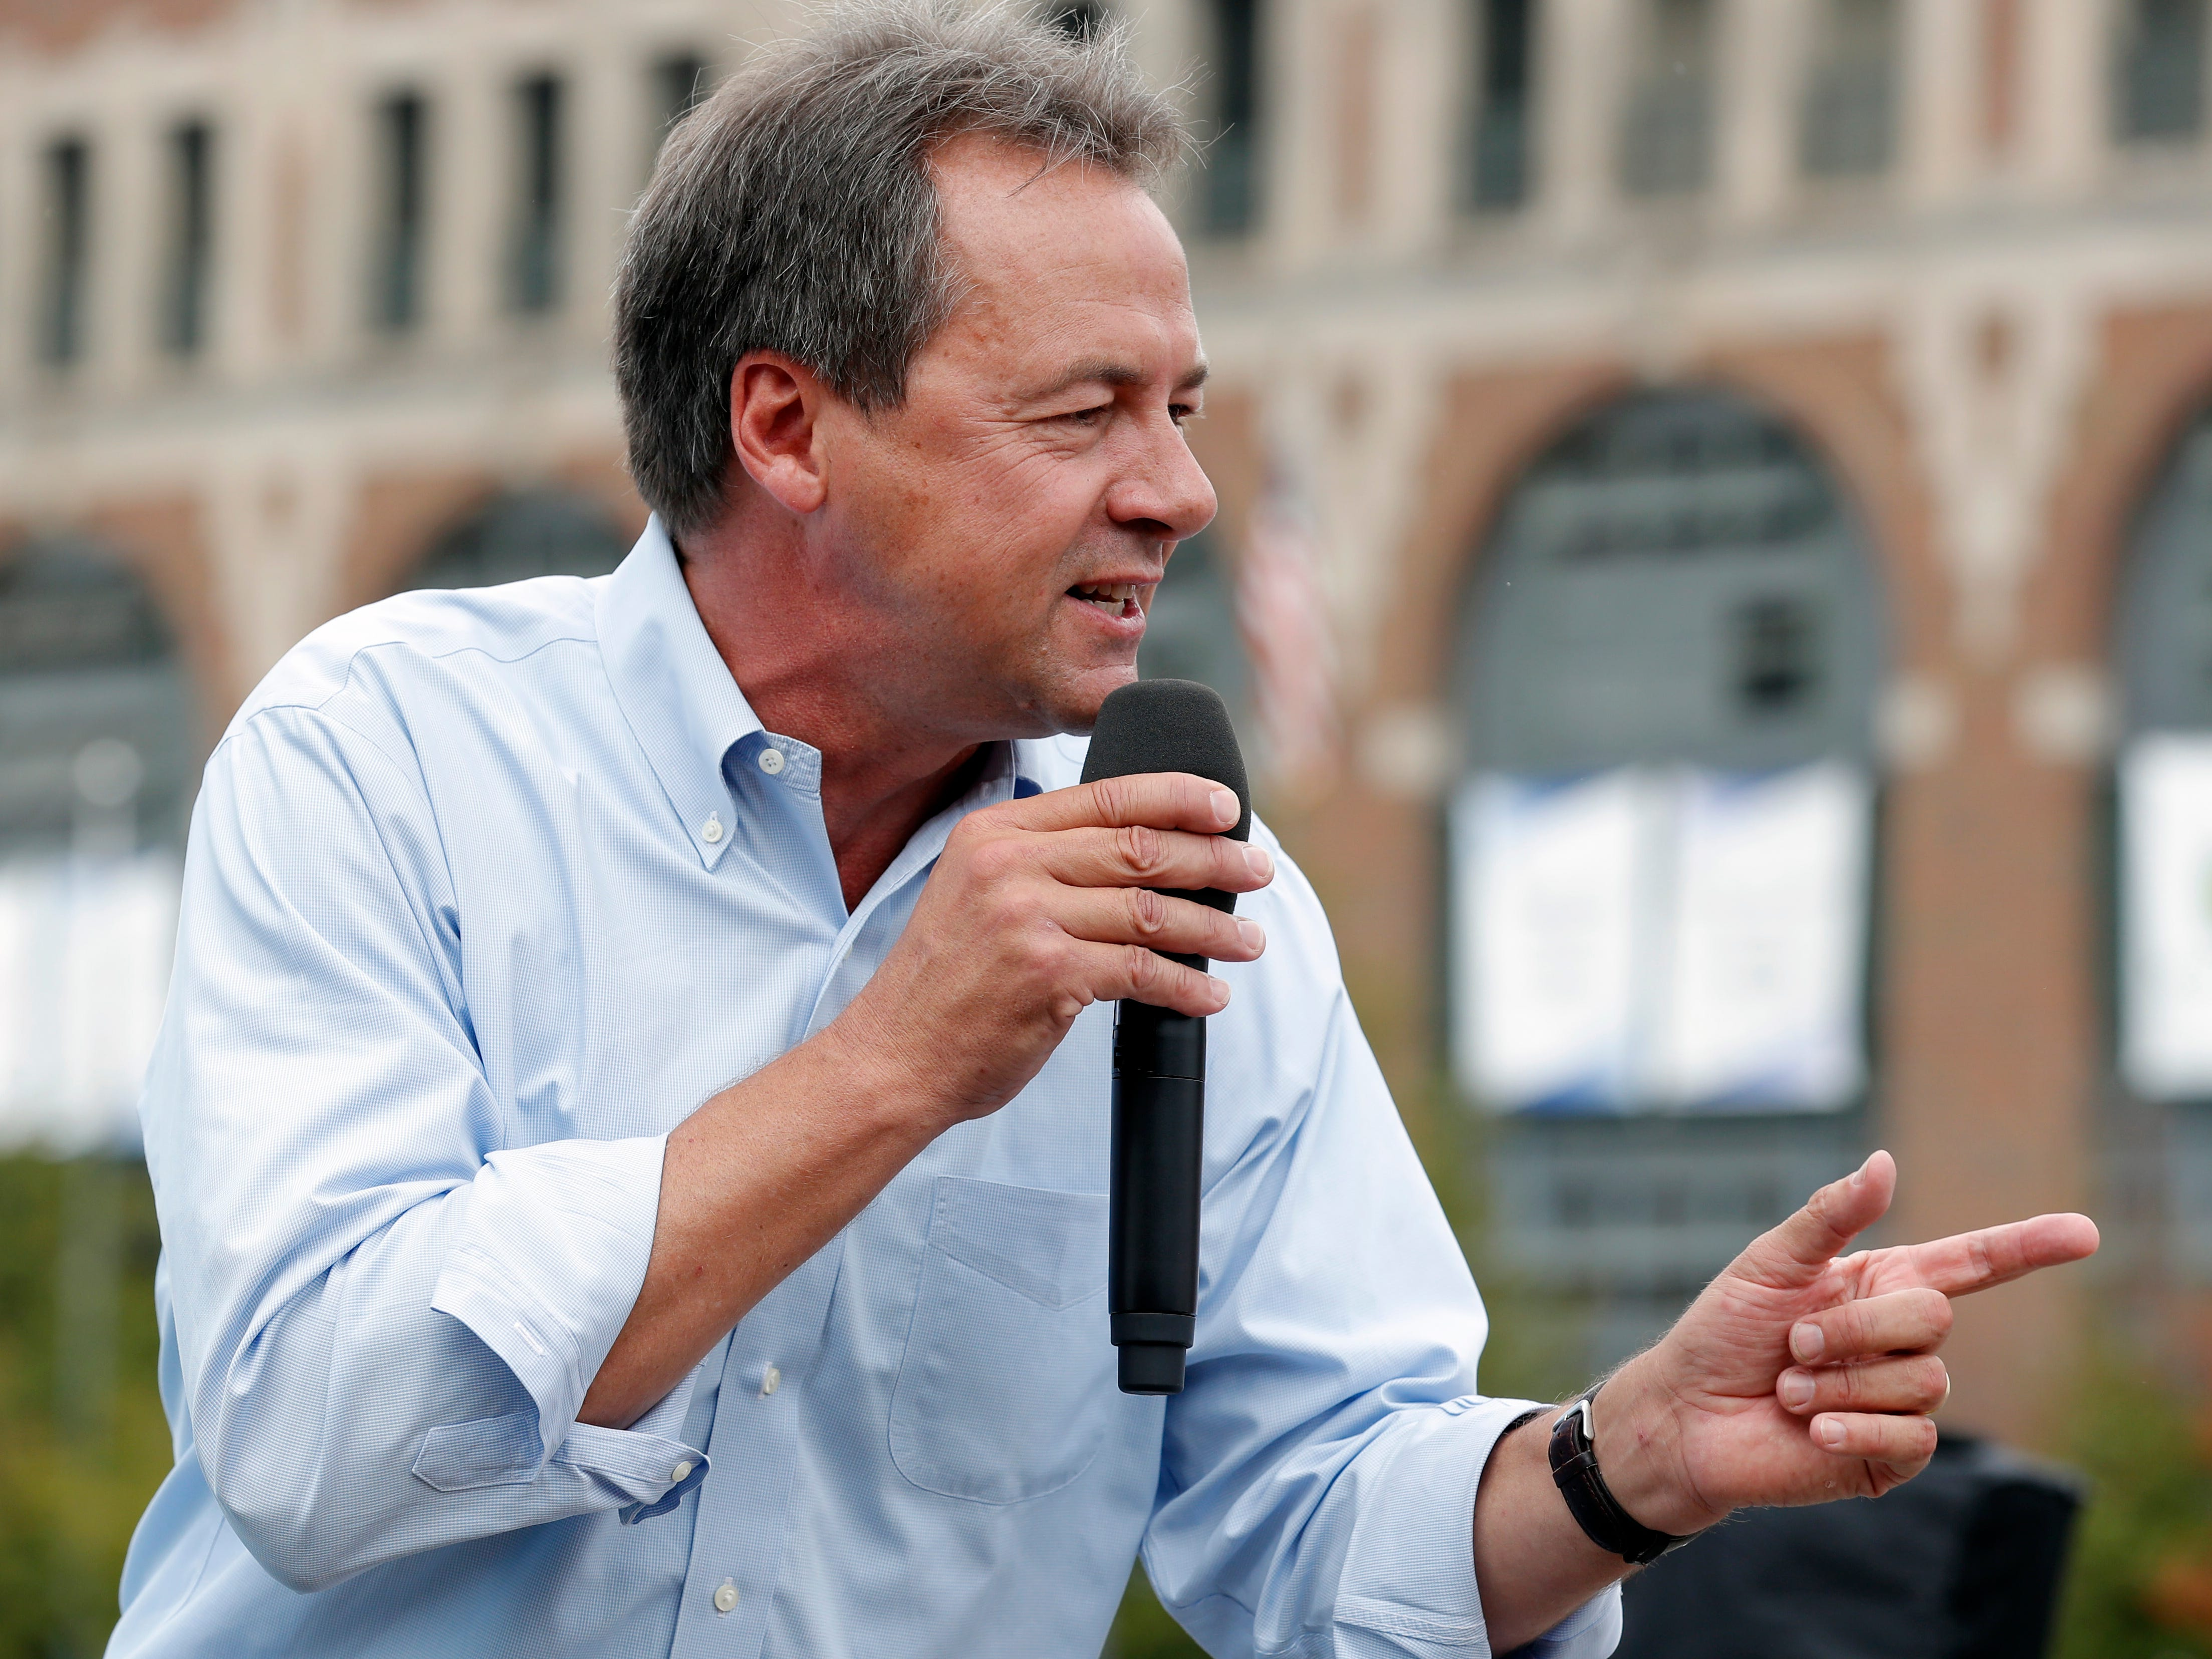 FILE - In this Aug. 16, 2018, file photo, Montana Gov. Steve Bullock speaks at the Des Moines Register Soapbox during a visit to the Iowa State Fair in Des Moines, Iowa. Motivated by an urgency to unseat President Donald Trump and the prospect of a historically large primary field, Democrats see little incentive to delay or downplay their 2020 presidential hopes. (AP Photo/Charlie Neibergall, File)